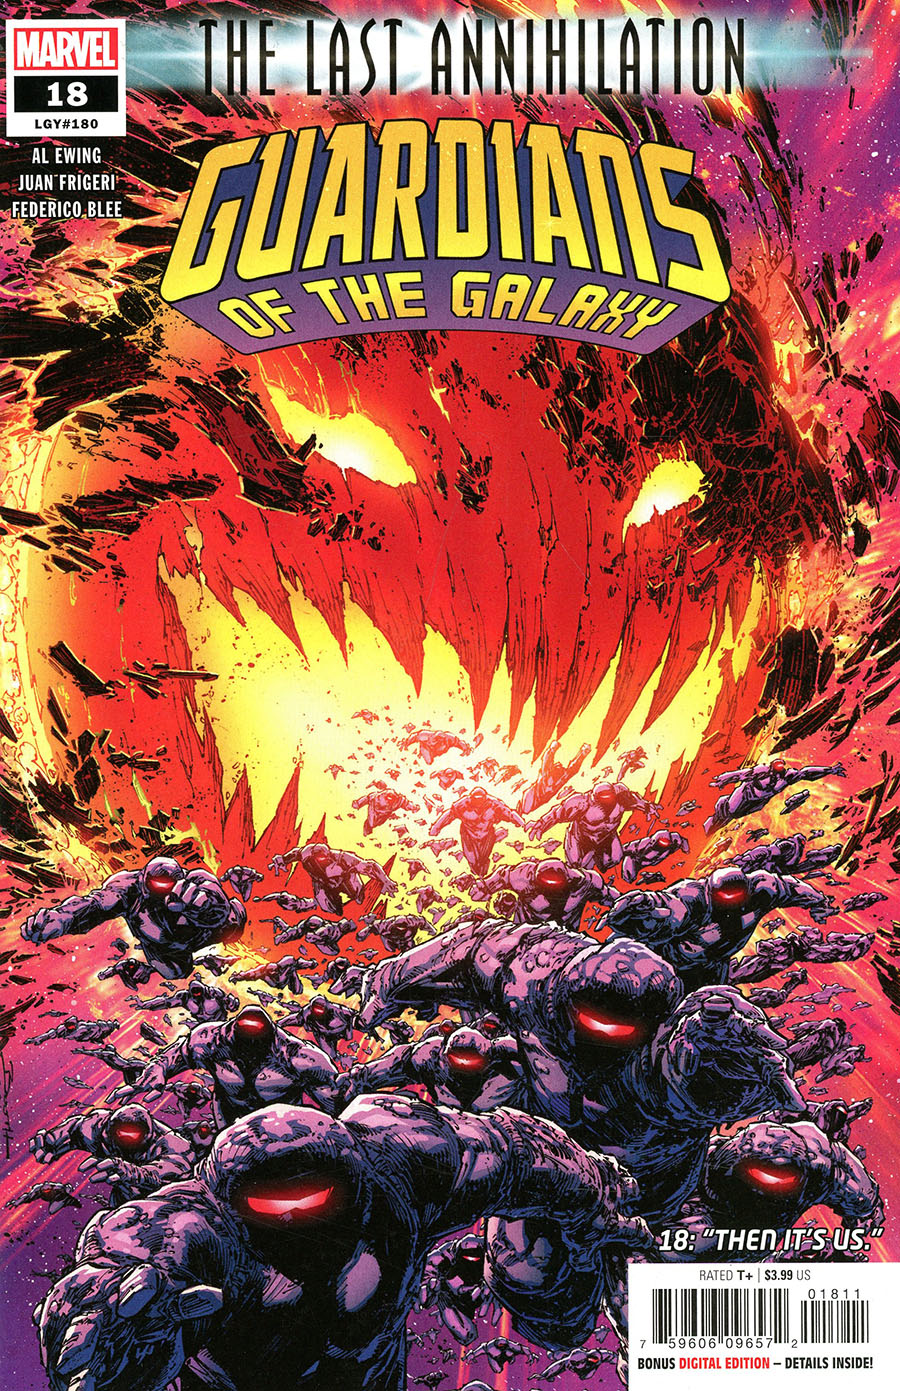 Guardians Of The Galaxy Vol 6 #18 Cover A Regular Brett Booth Cover (Last Annihilation Tie-In)